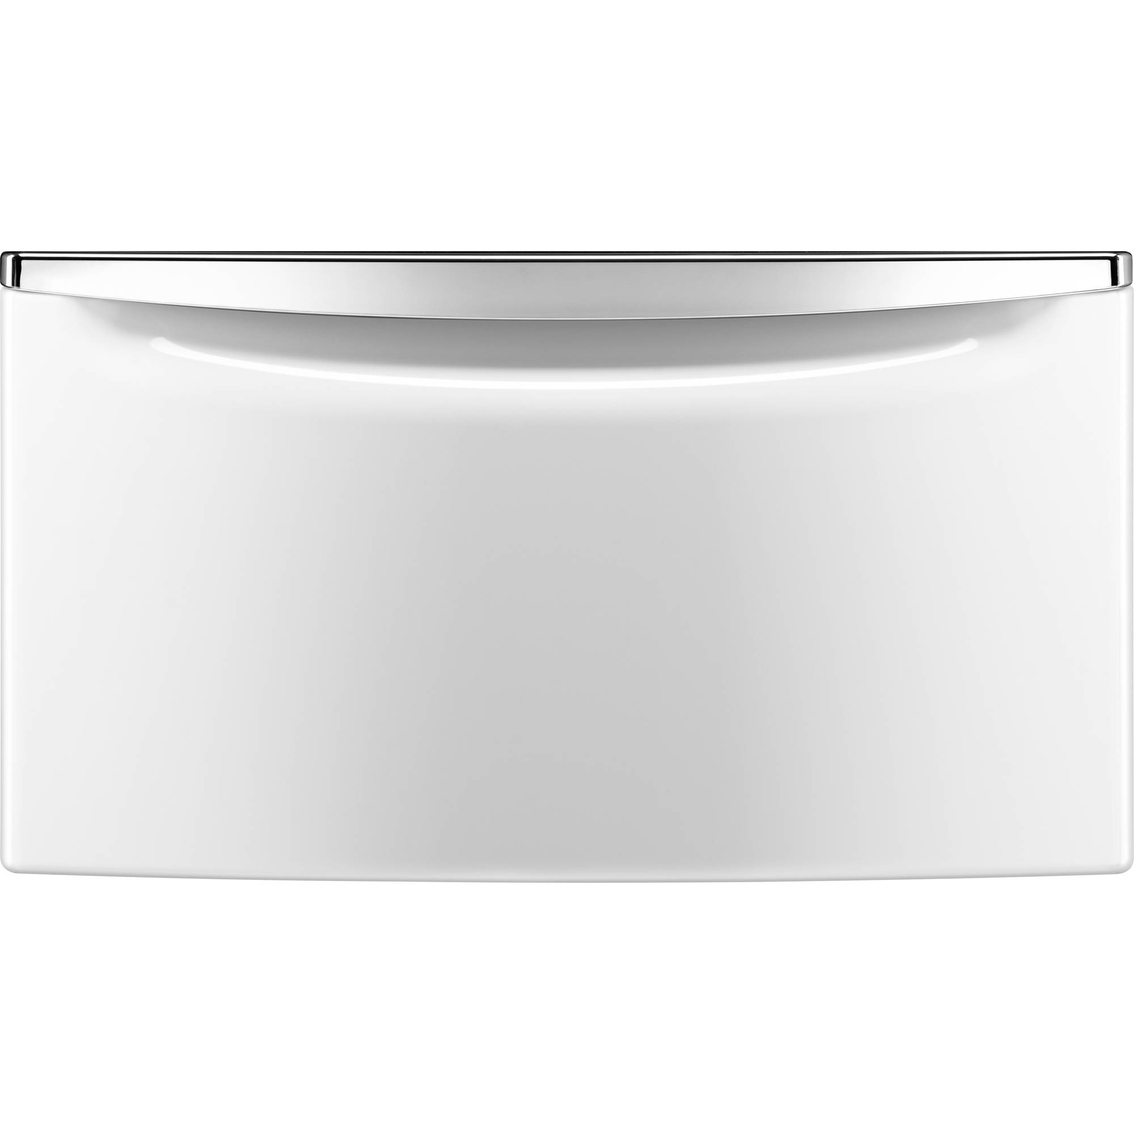 chrome drawer laundry and accessories storage handle maytag with pedestal appliances product